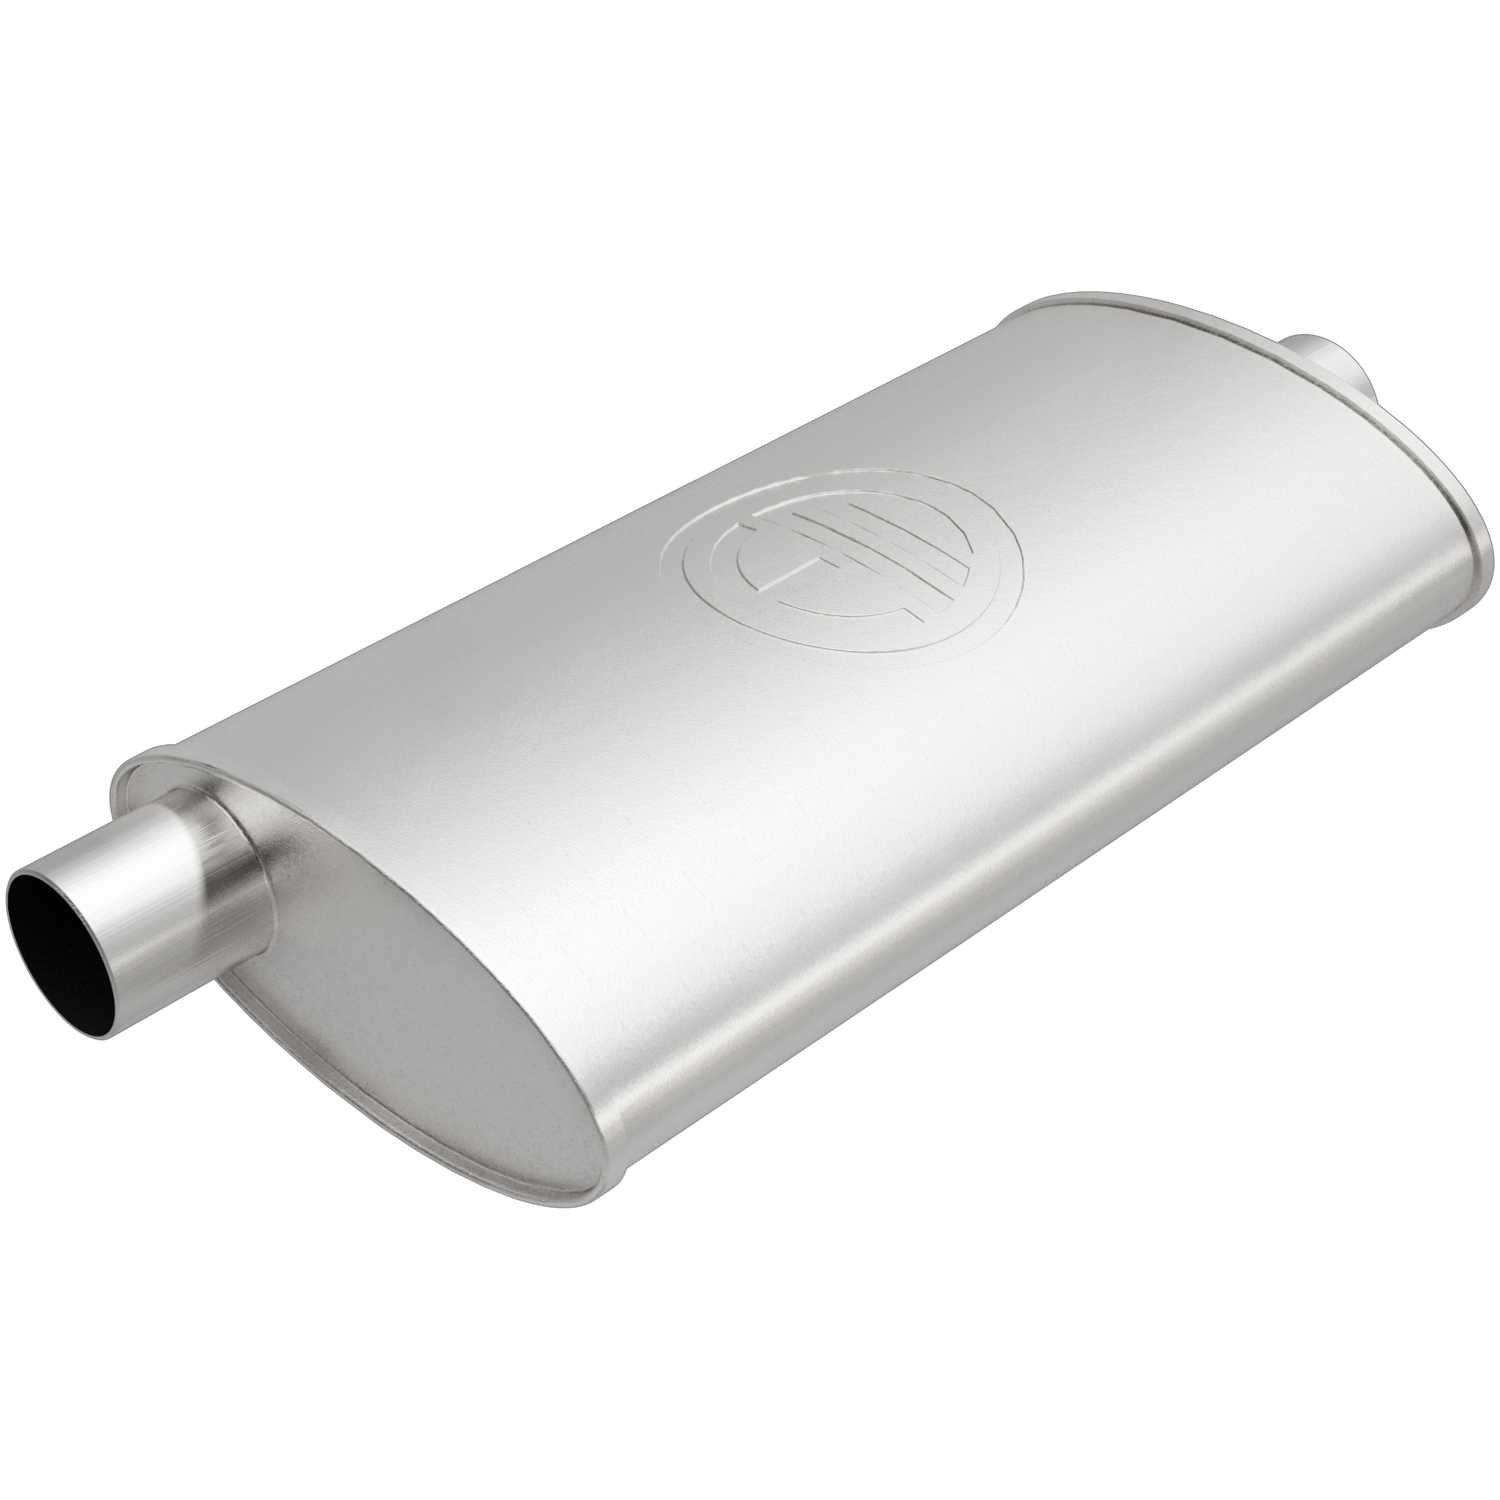 100-1756 Bosal USA Exhaust Muffler Aluminized Steel Case